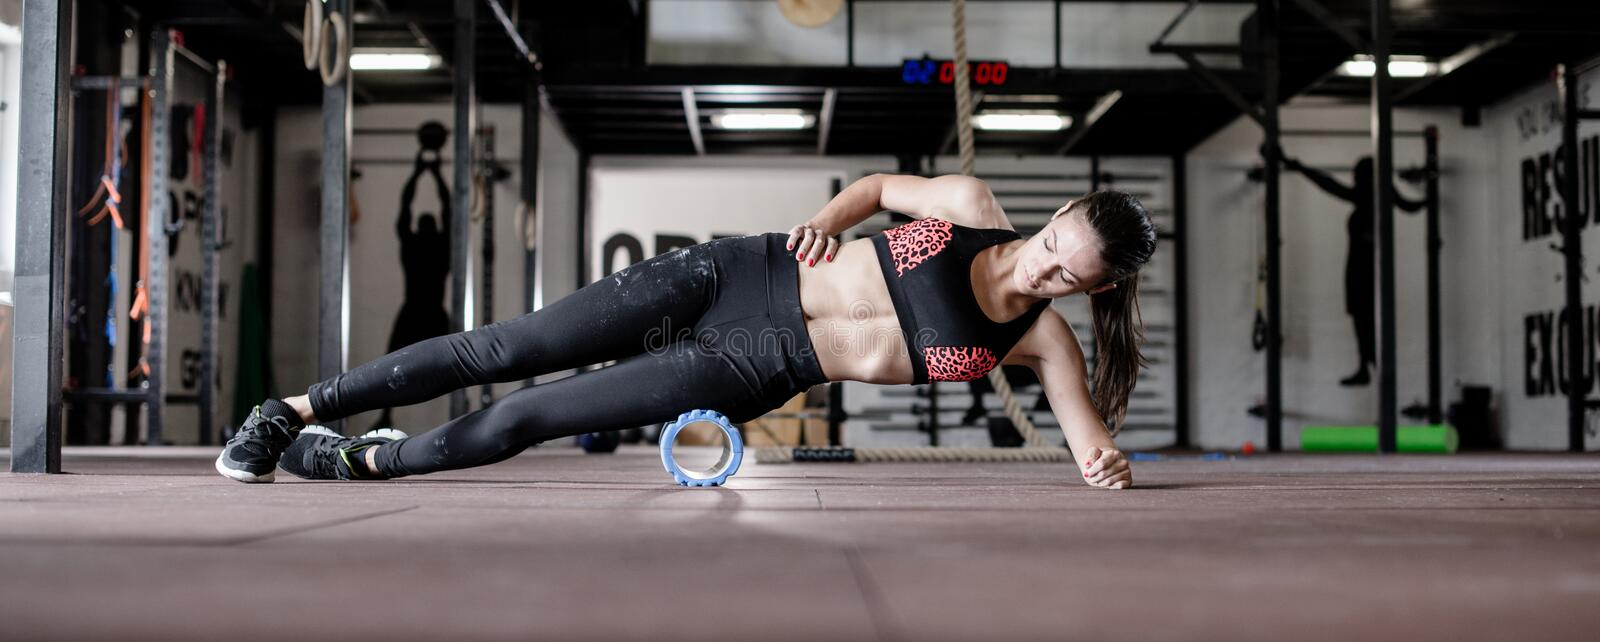 Young woman works out on gym floor. Girl works out on gym floor stock images